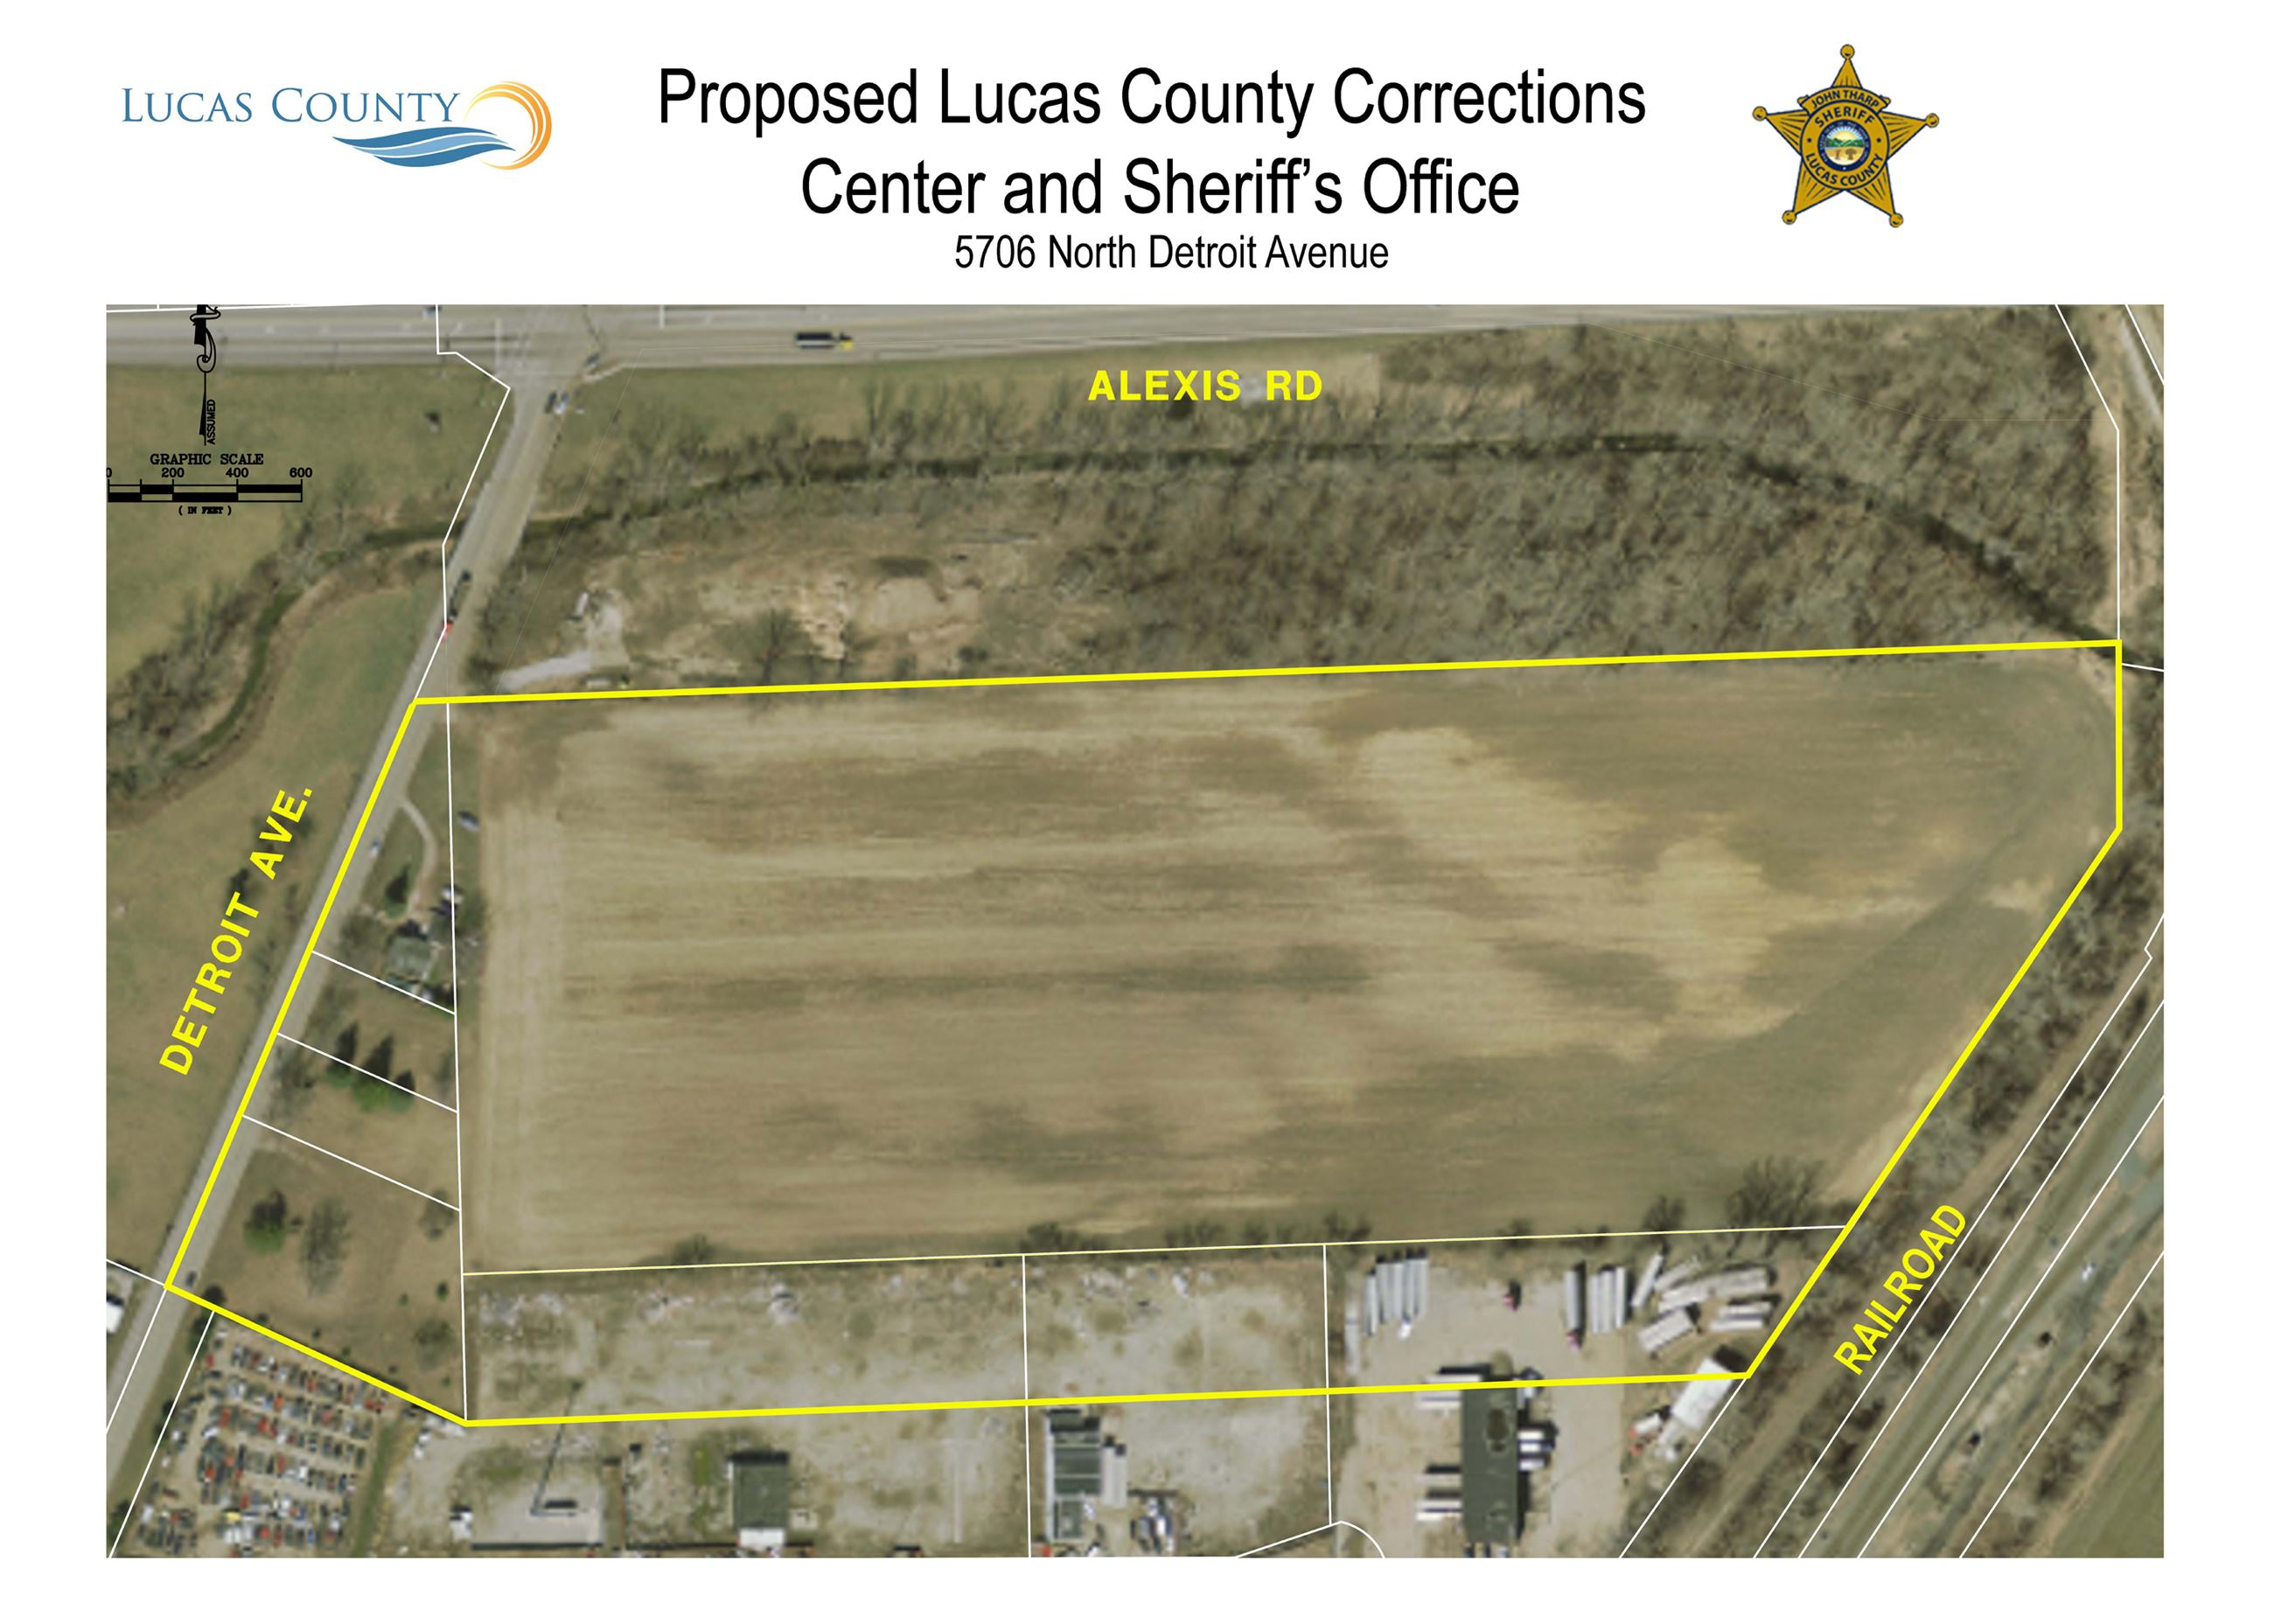 Proposed Jail Information   Lucas County, OH - Official Website